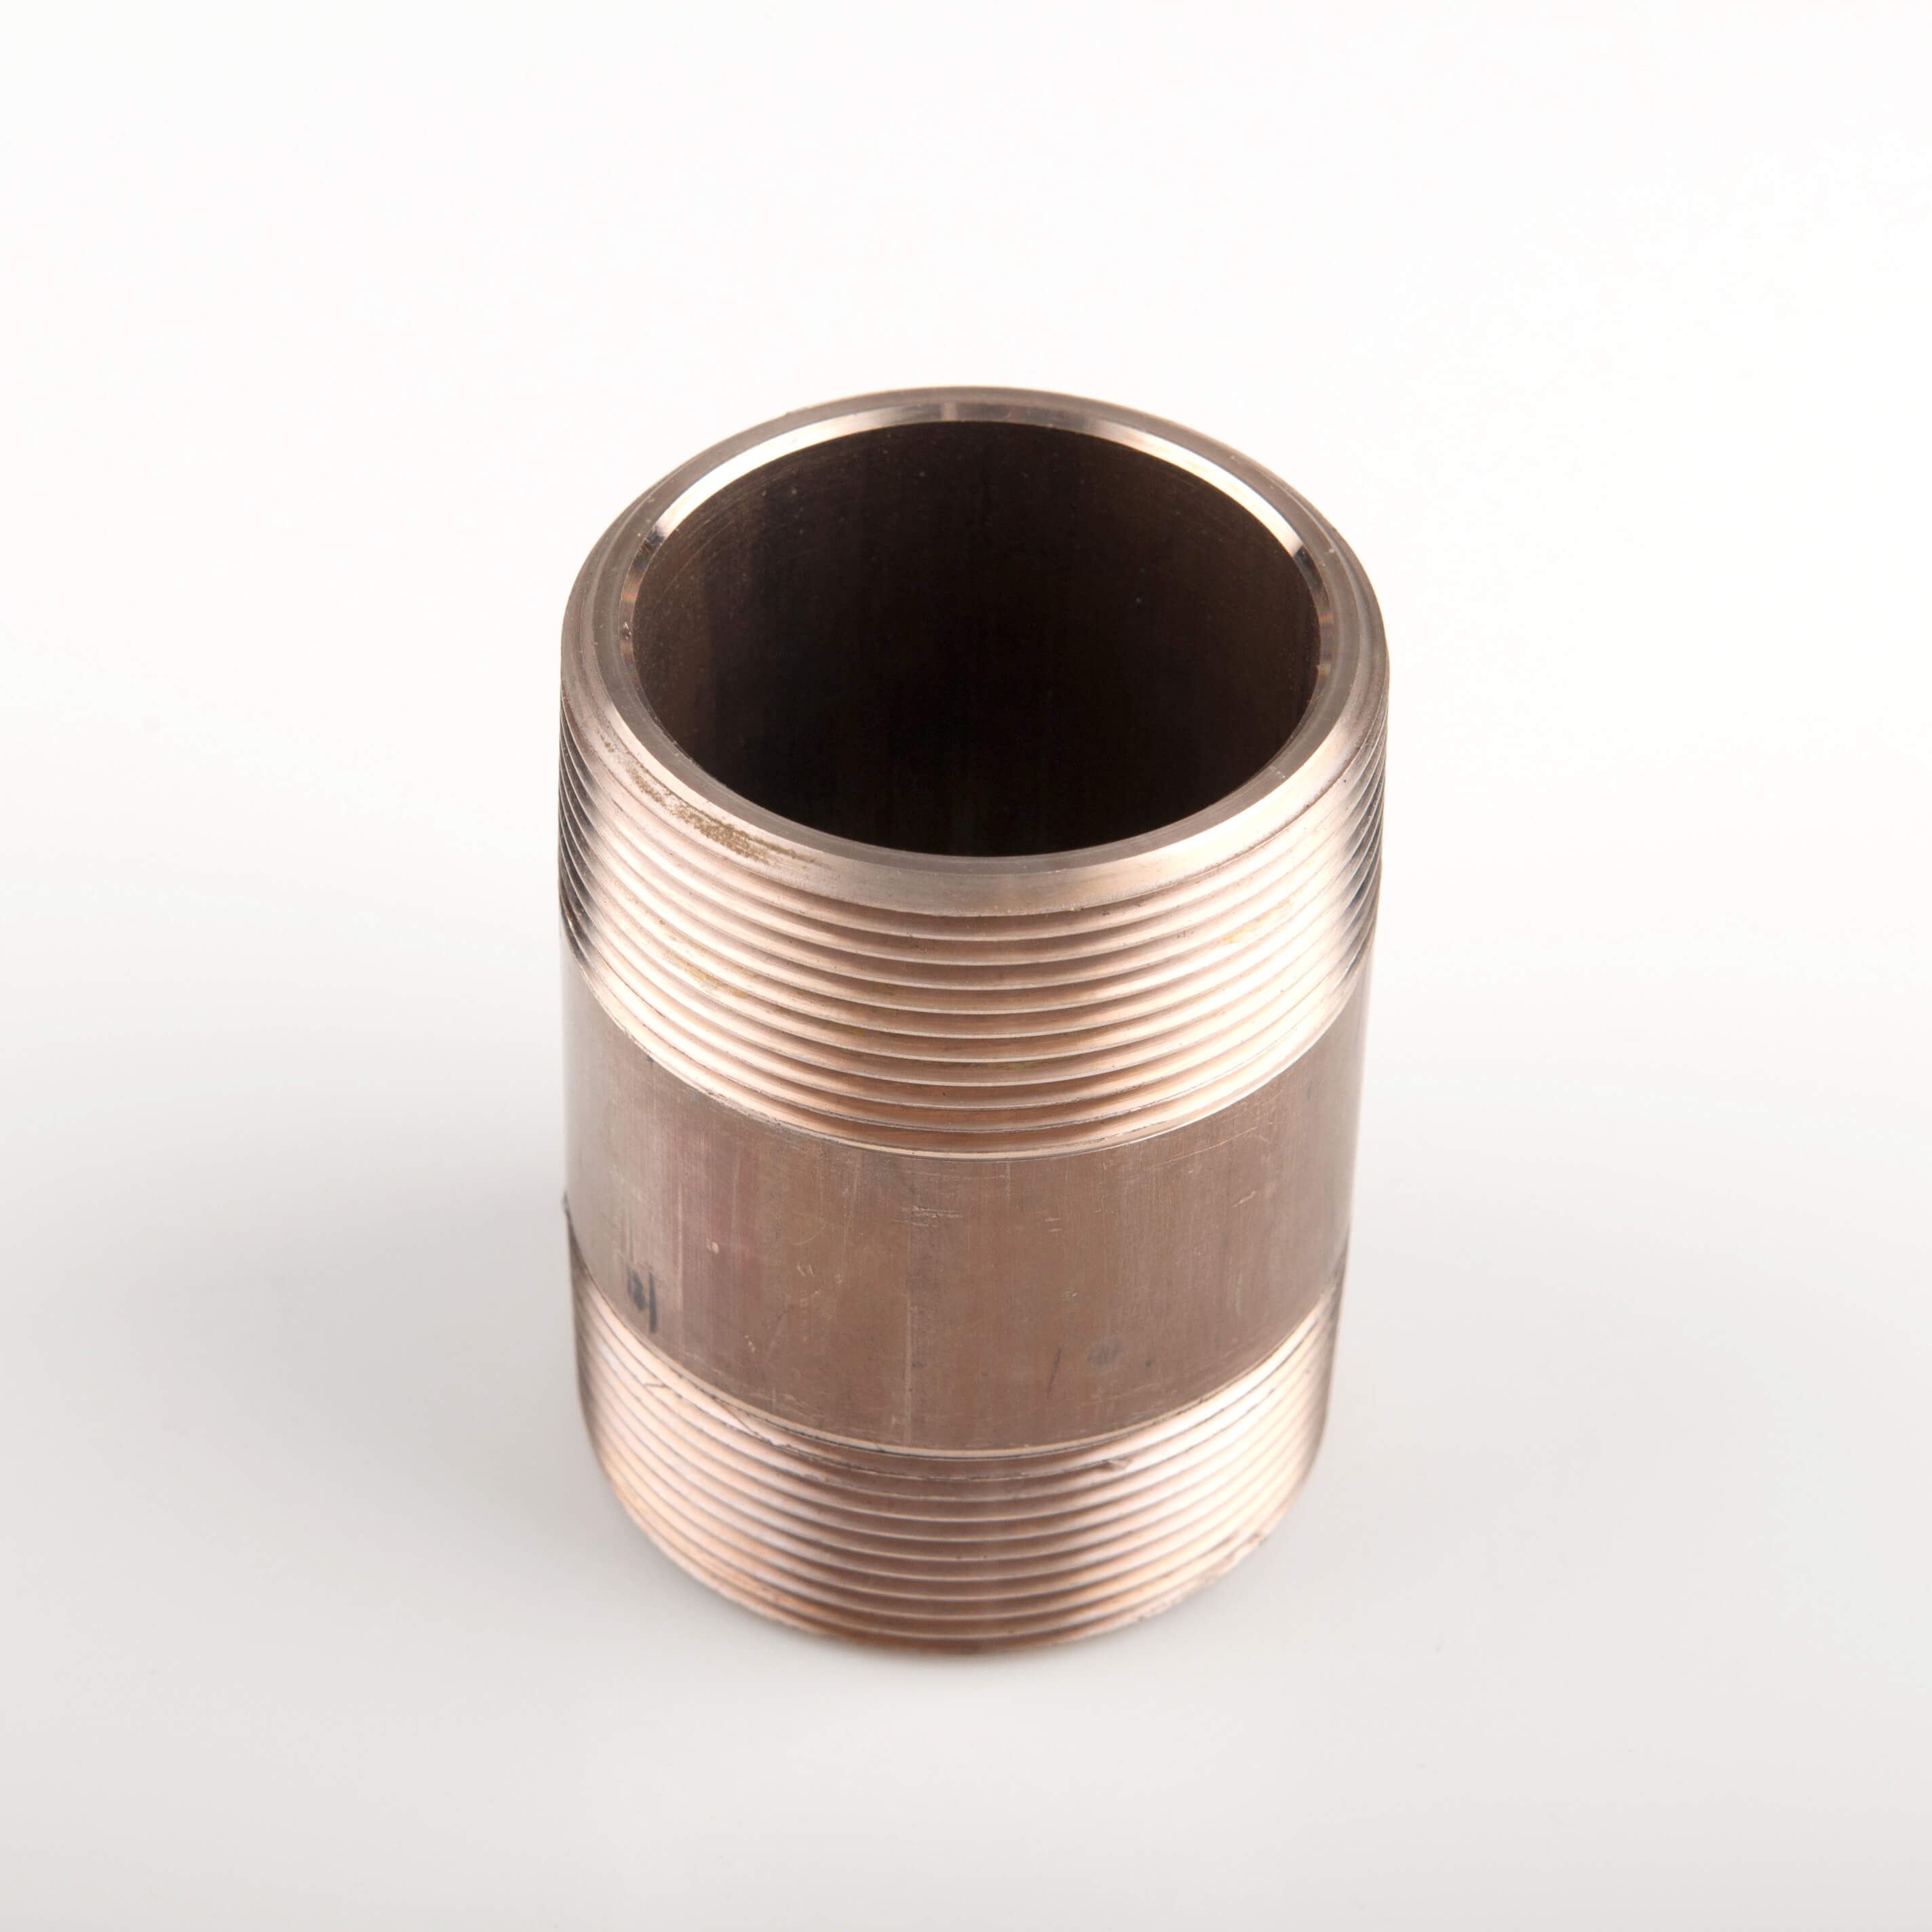 Copper nickel pipes with threaded ends